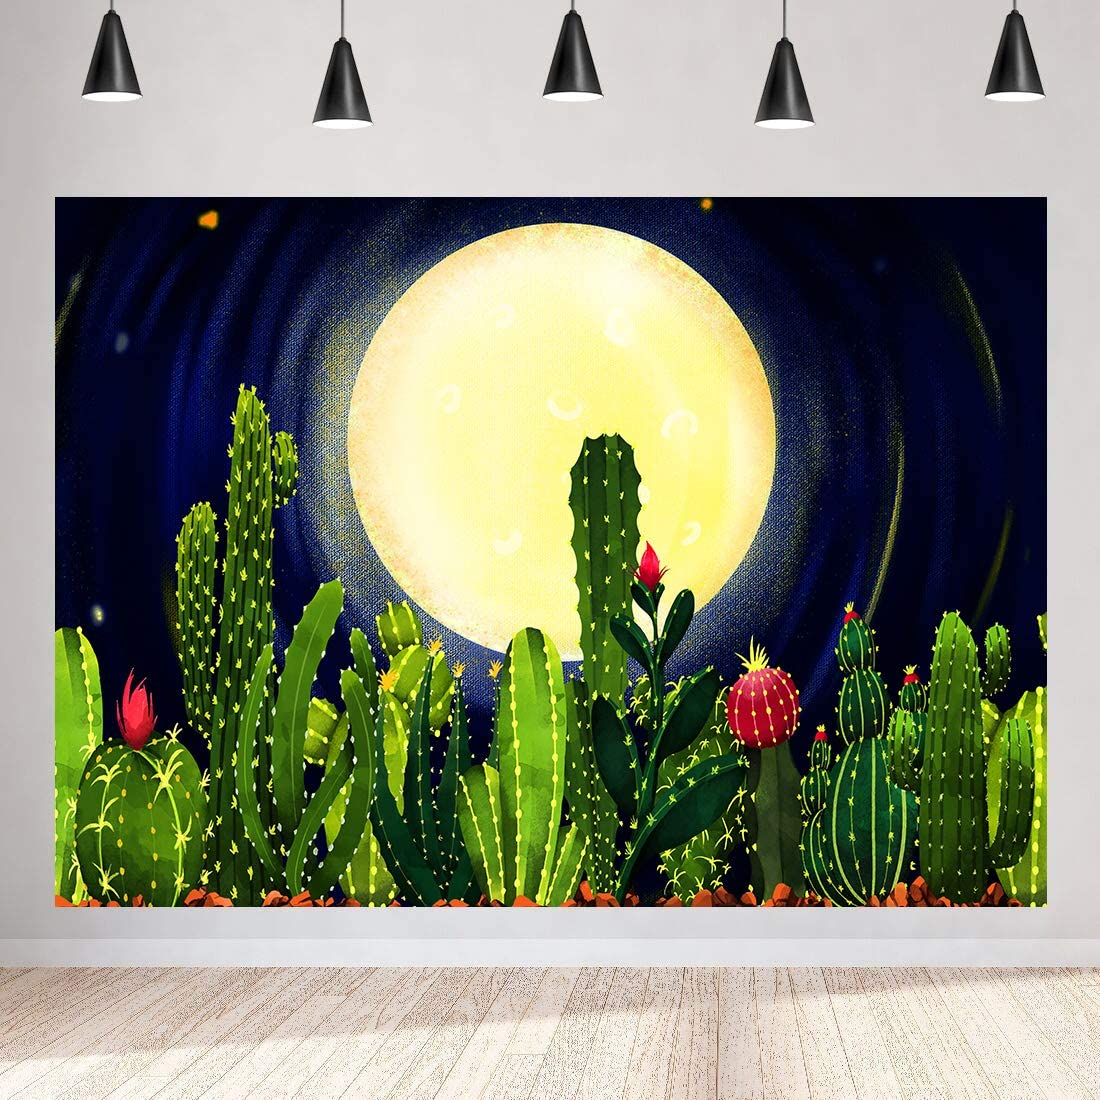 Desert Cactus Backdrop for Photography, 9x6ft / 2.7x1.8m, Night Moonlight Background, YouTube Photo Shooting Props BJLSST28